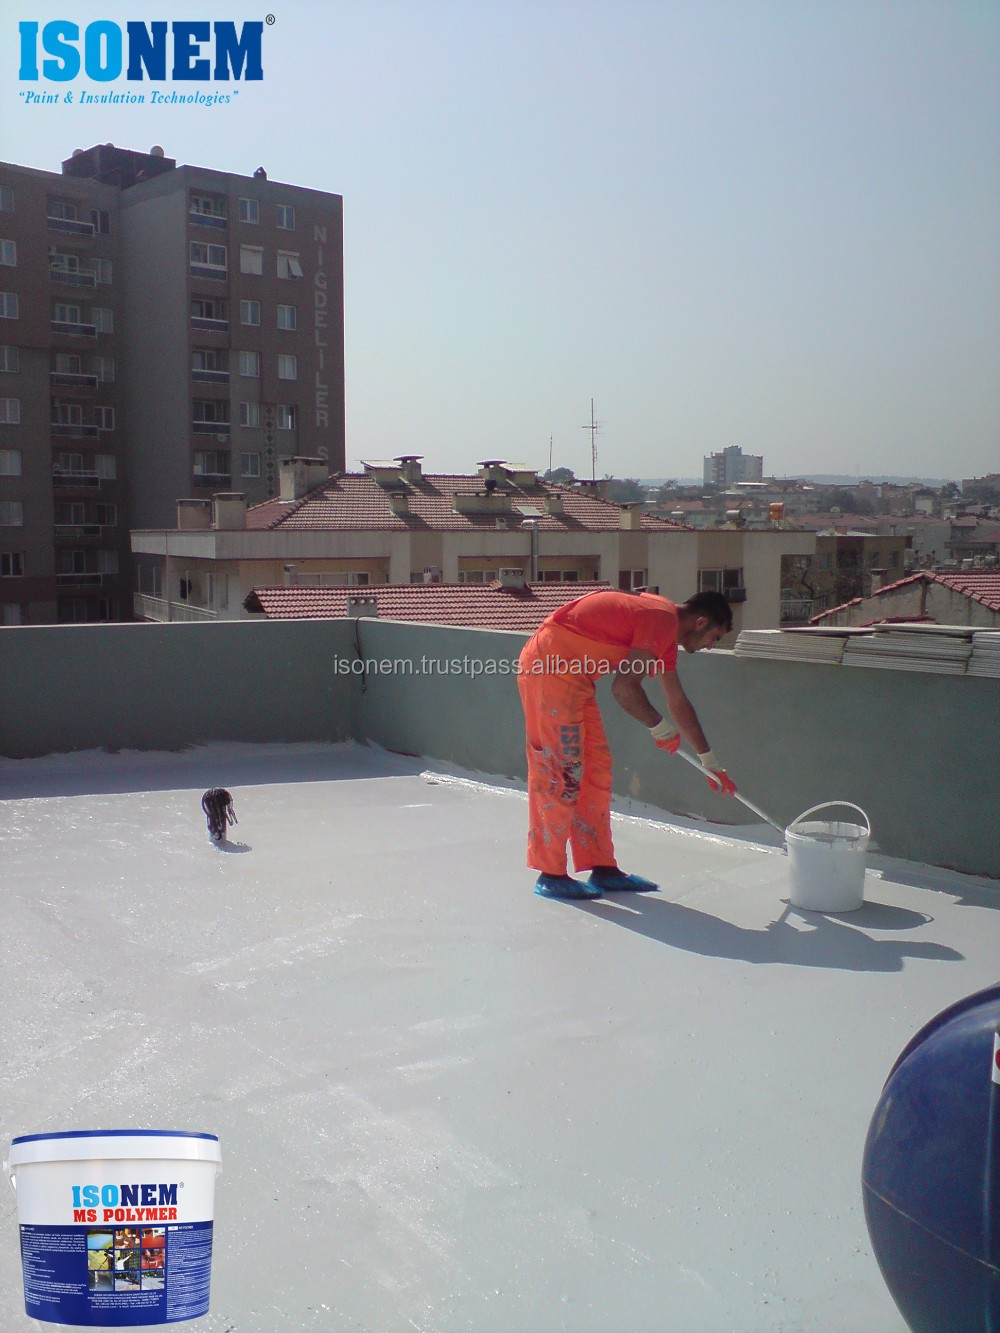 HOT SELLING!!!! ISONEM MS POLYMER, HIGHLY FLEXIBLE LIQUID APPLIED WATERPROOFING MEMBRANE